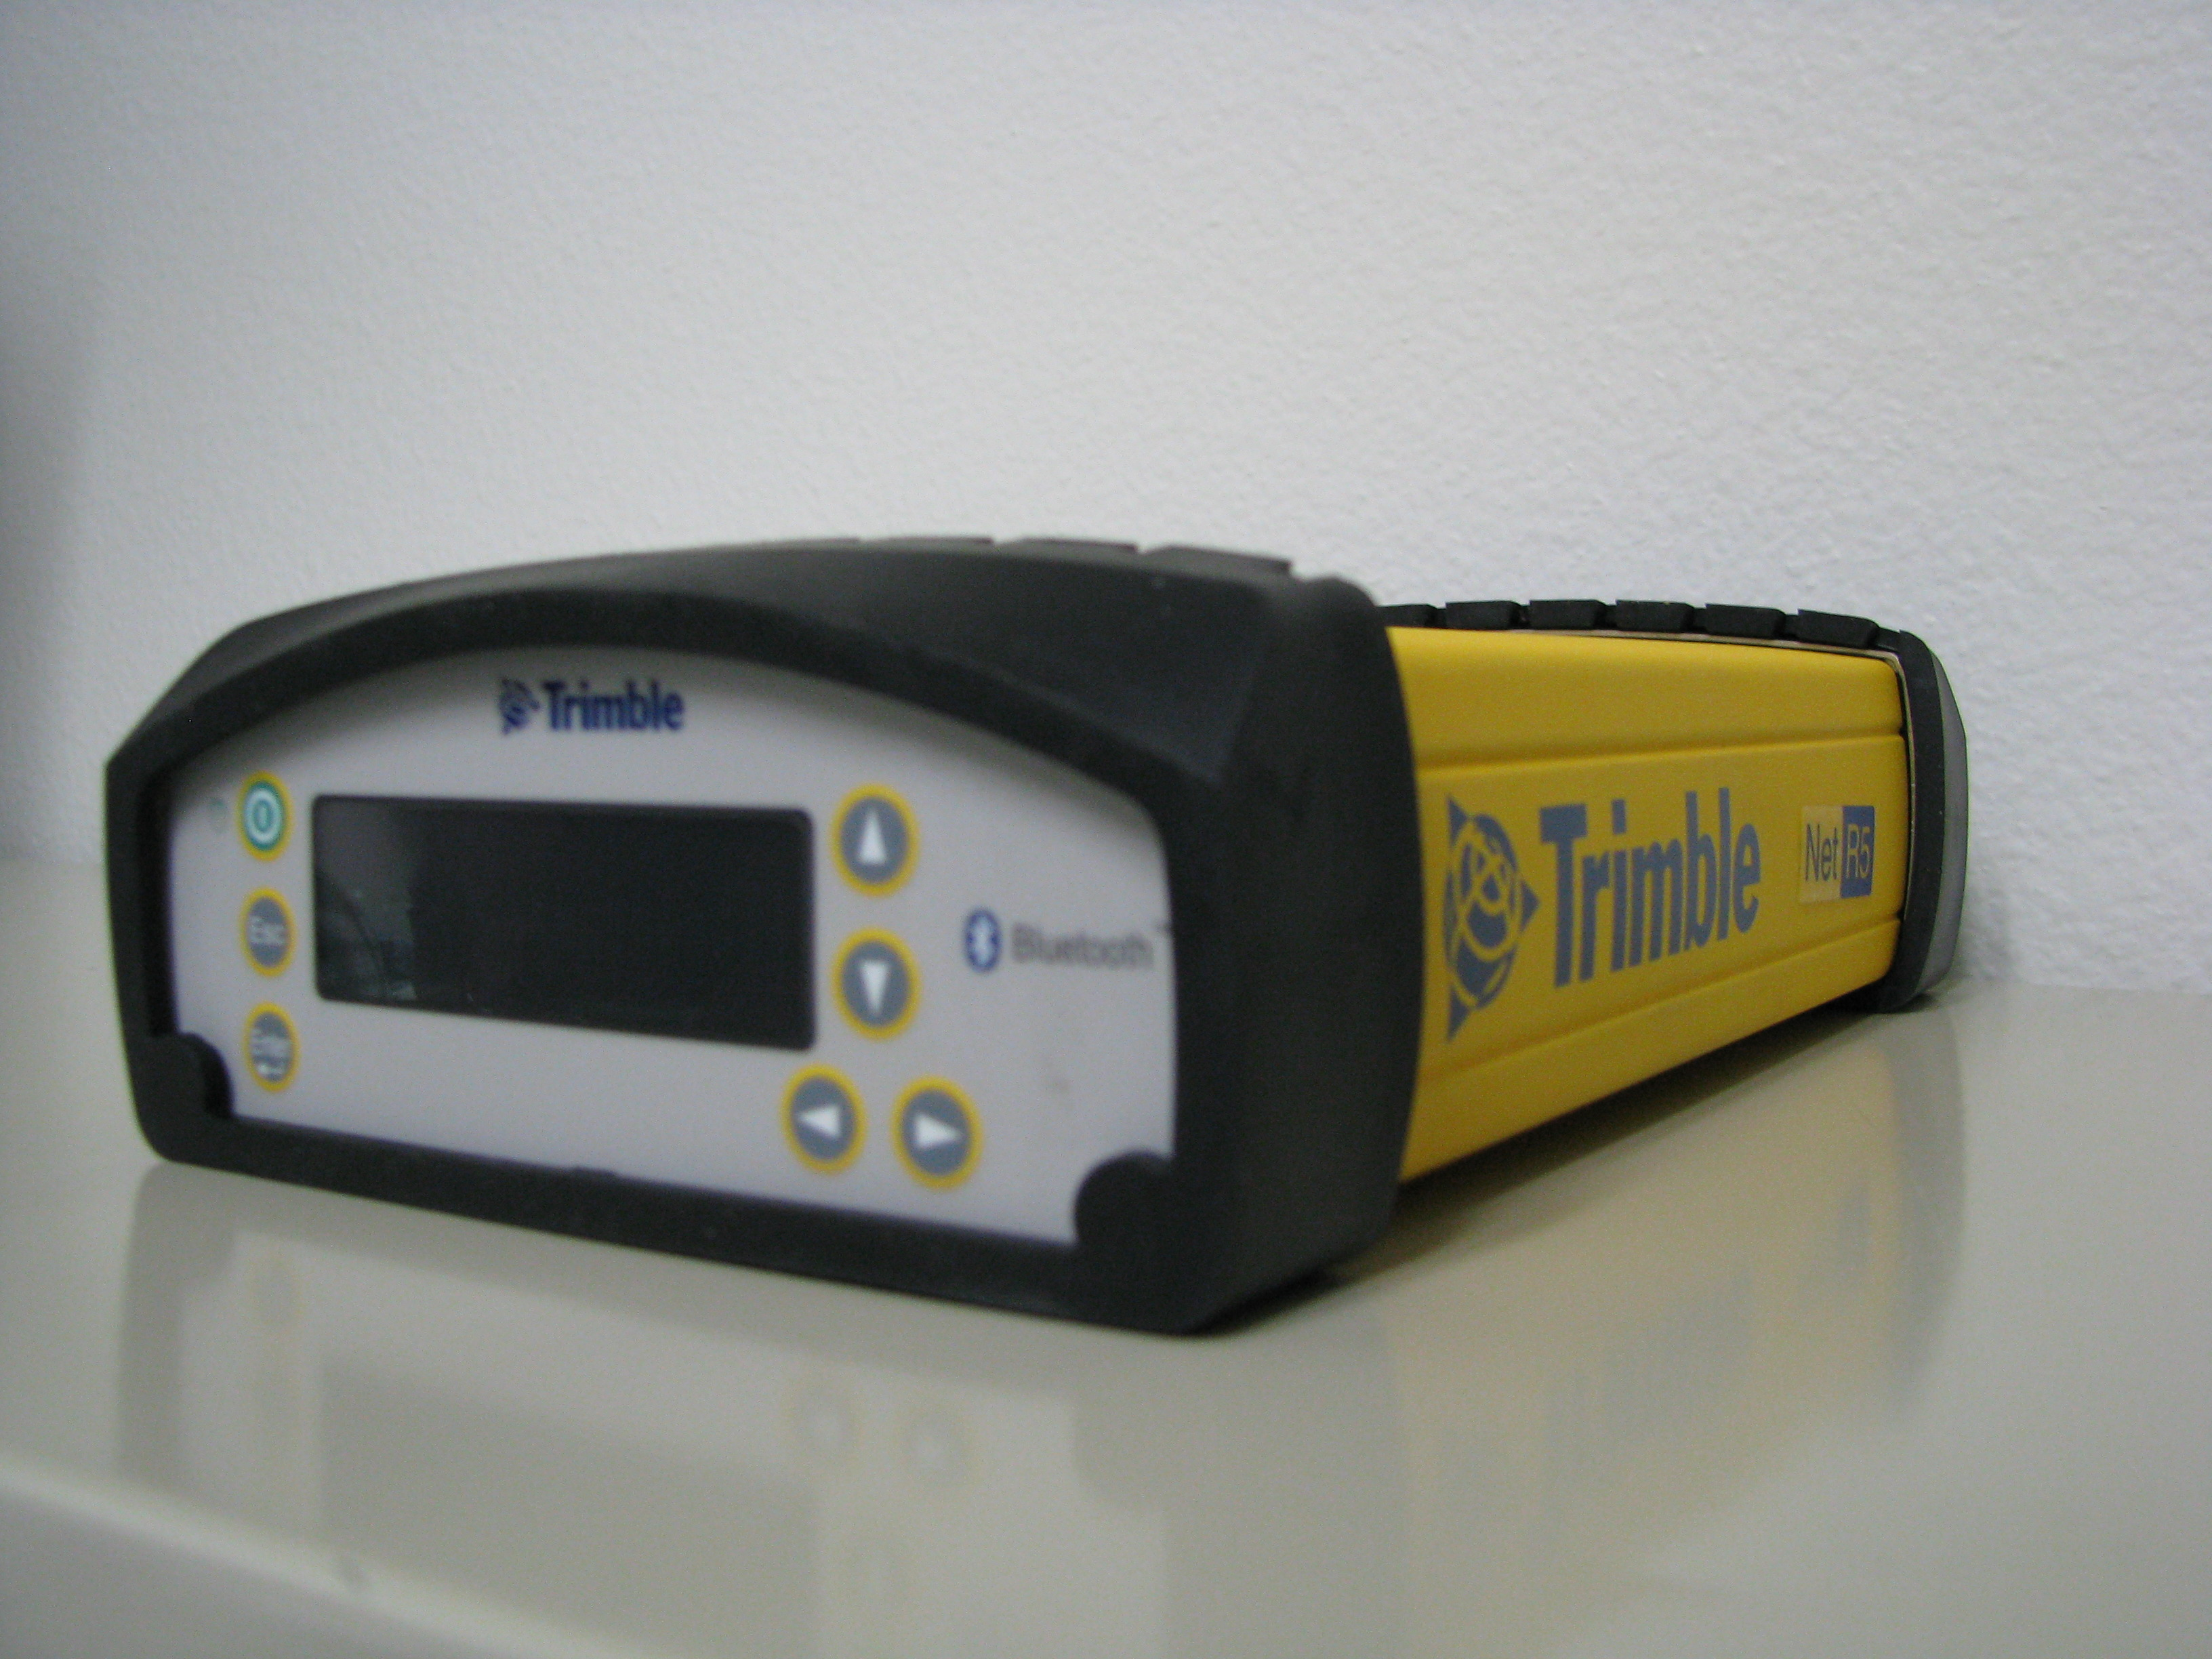 Image of Trimble 5700 Receiver